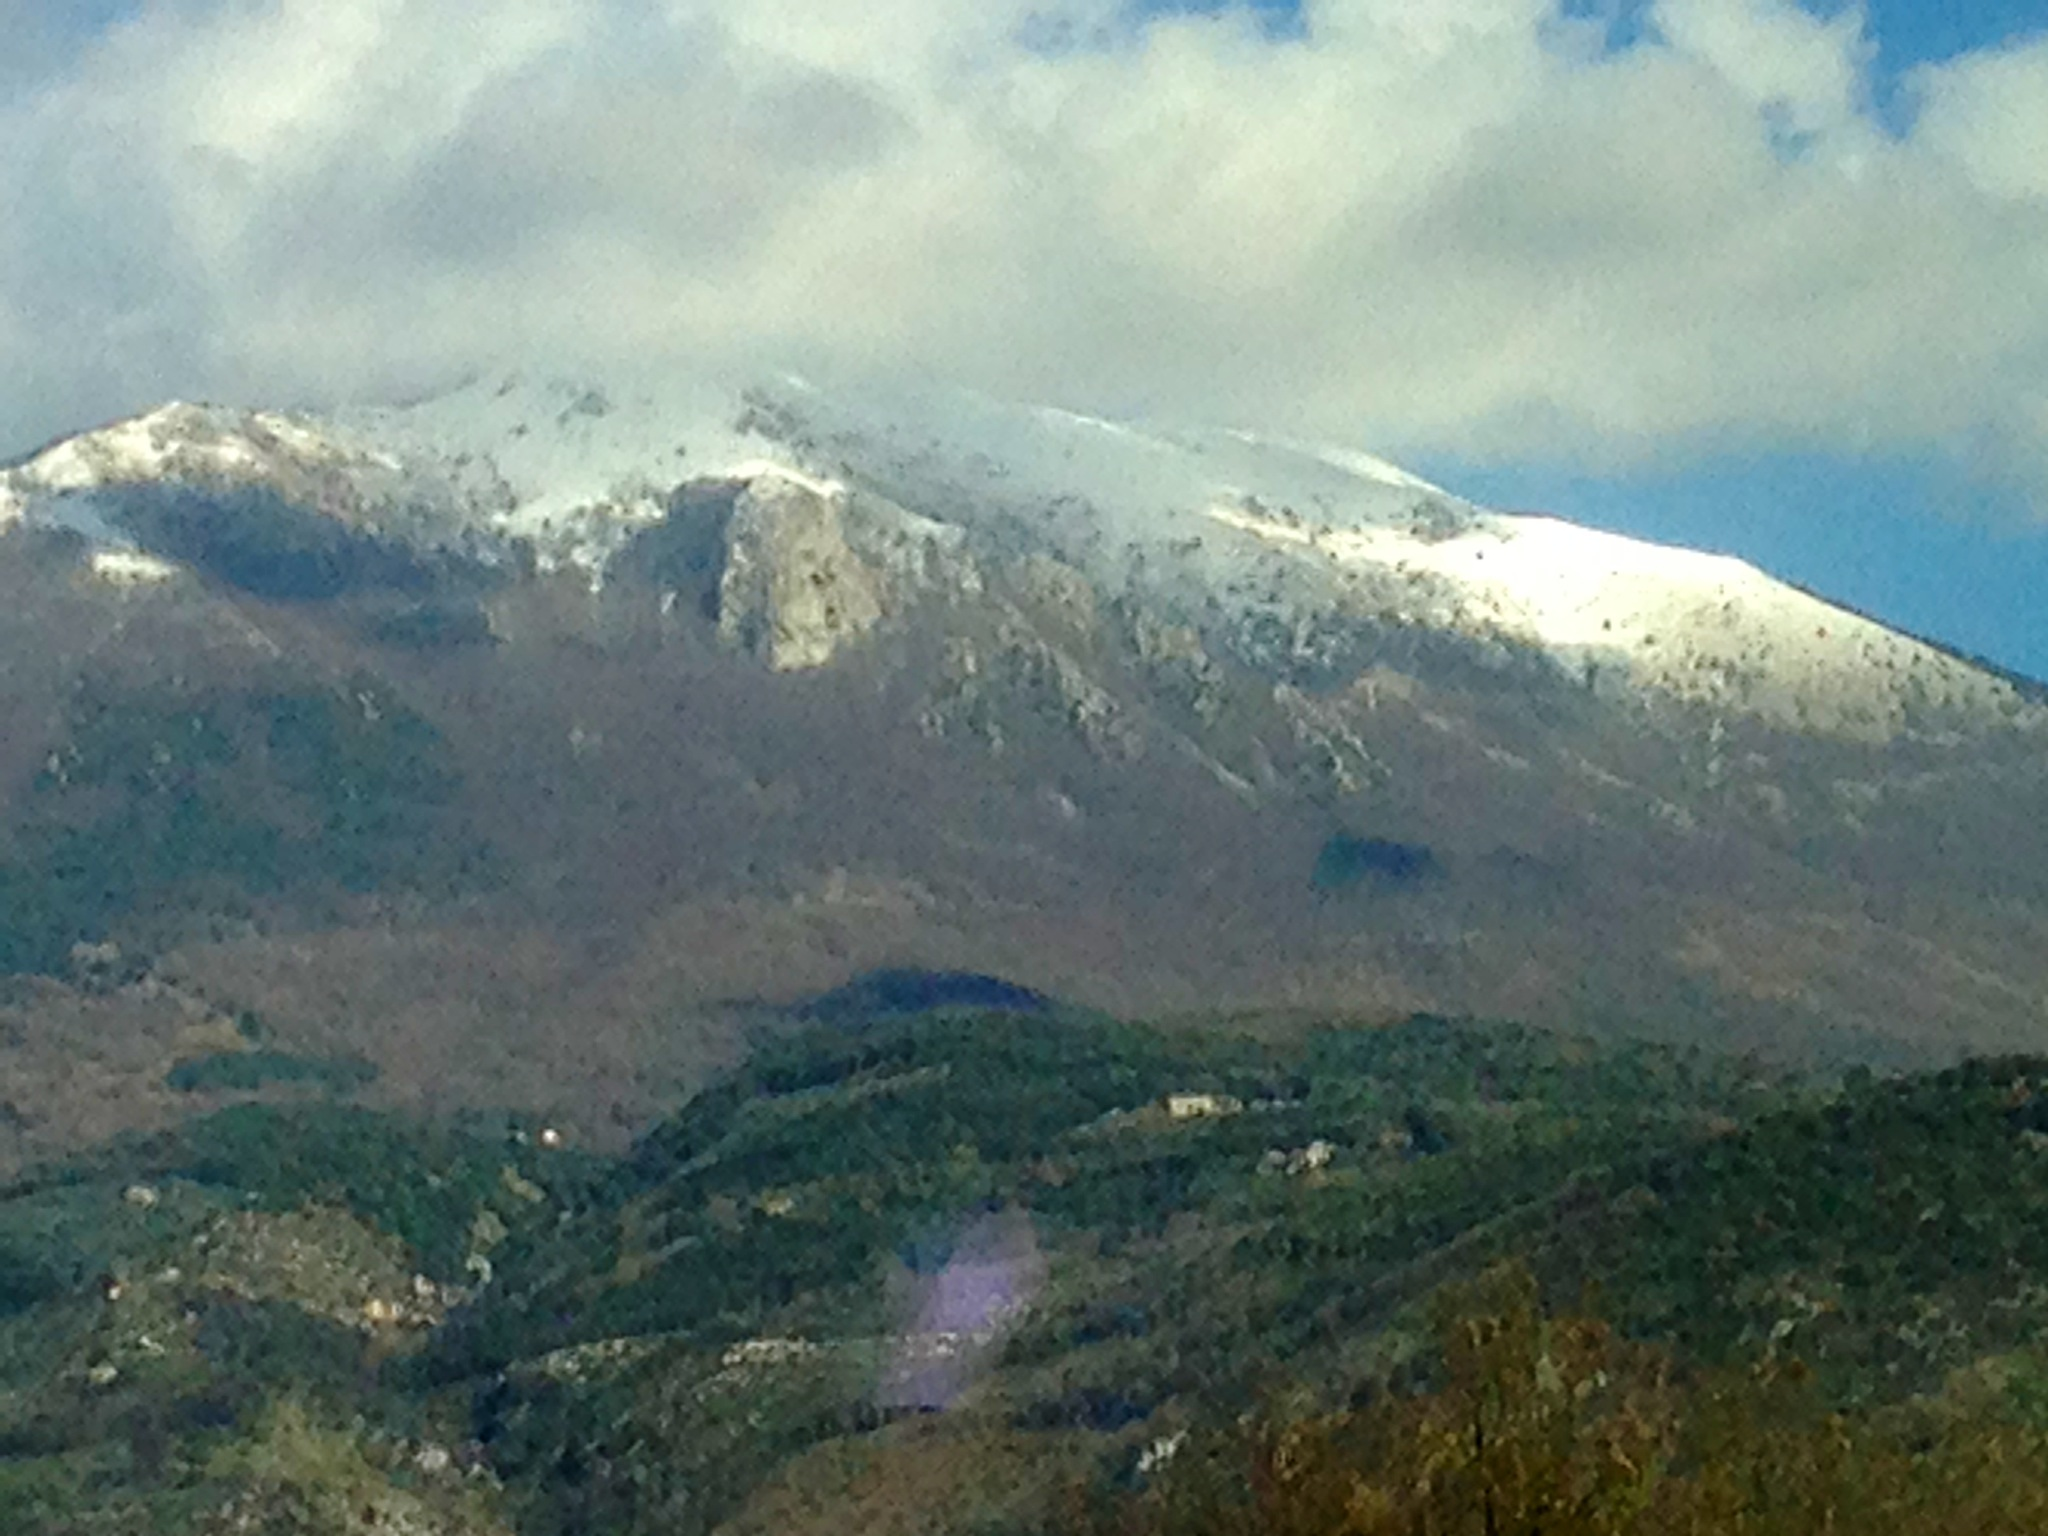 Snow-capped peaks near Cassino